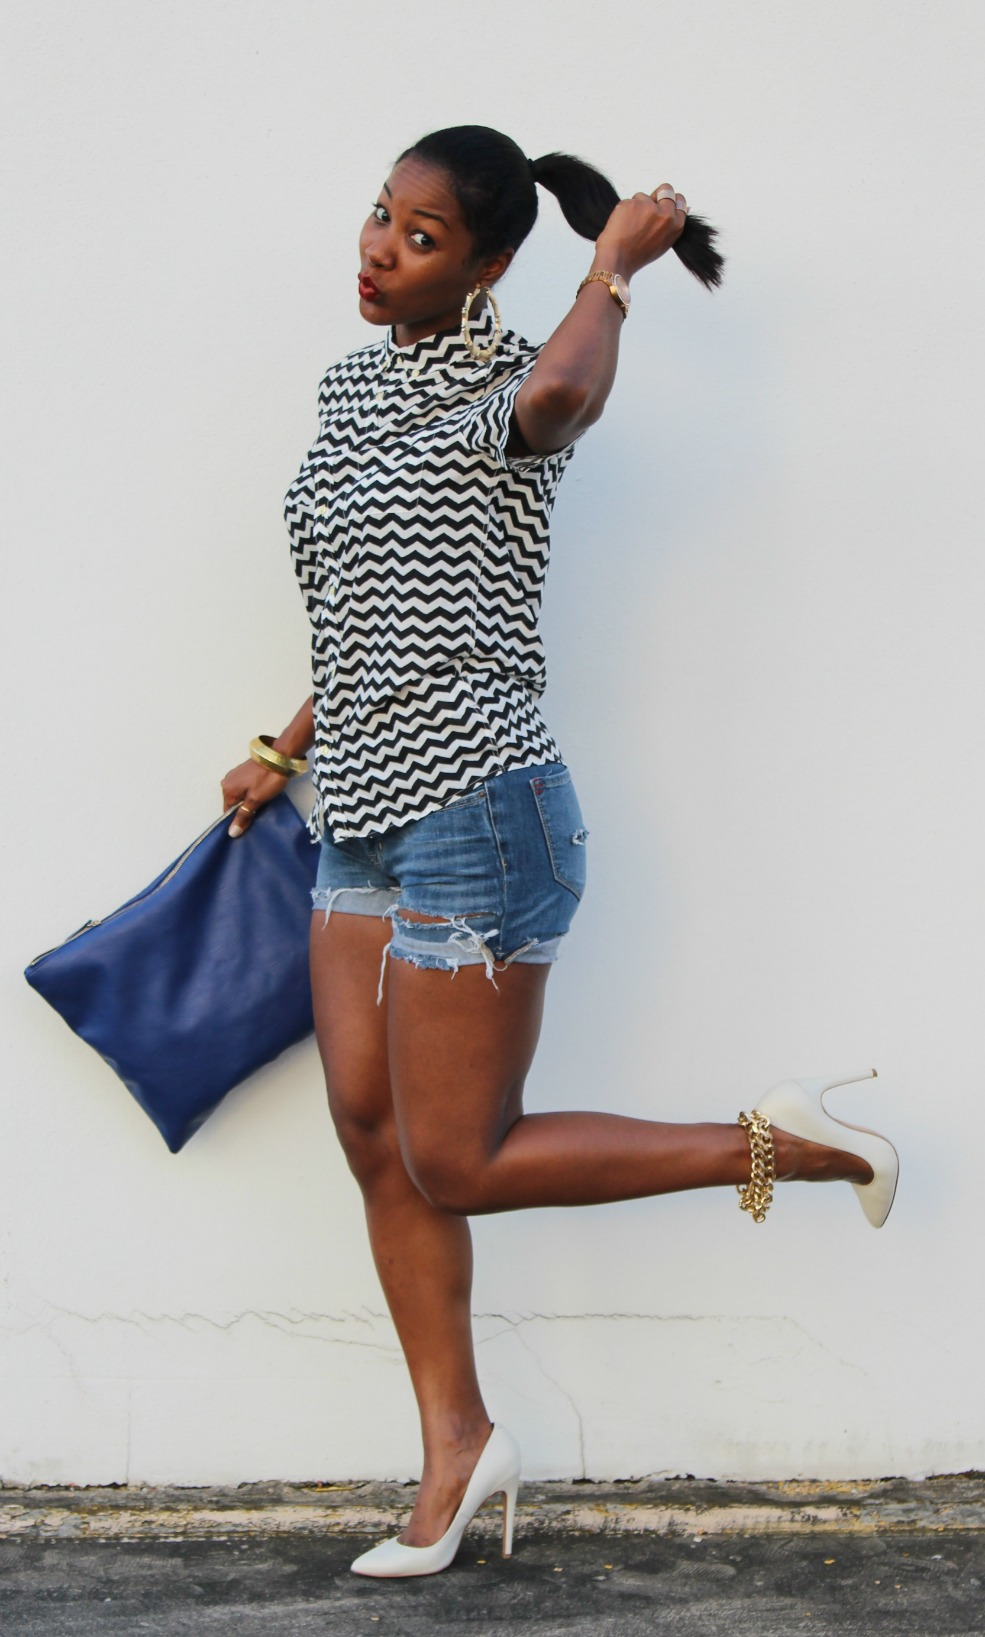 H&M Men's Shirt, cut-off shorts, Aldo Pumps